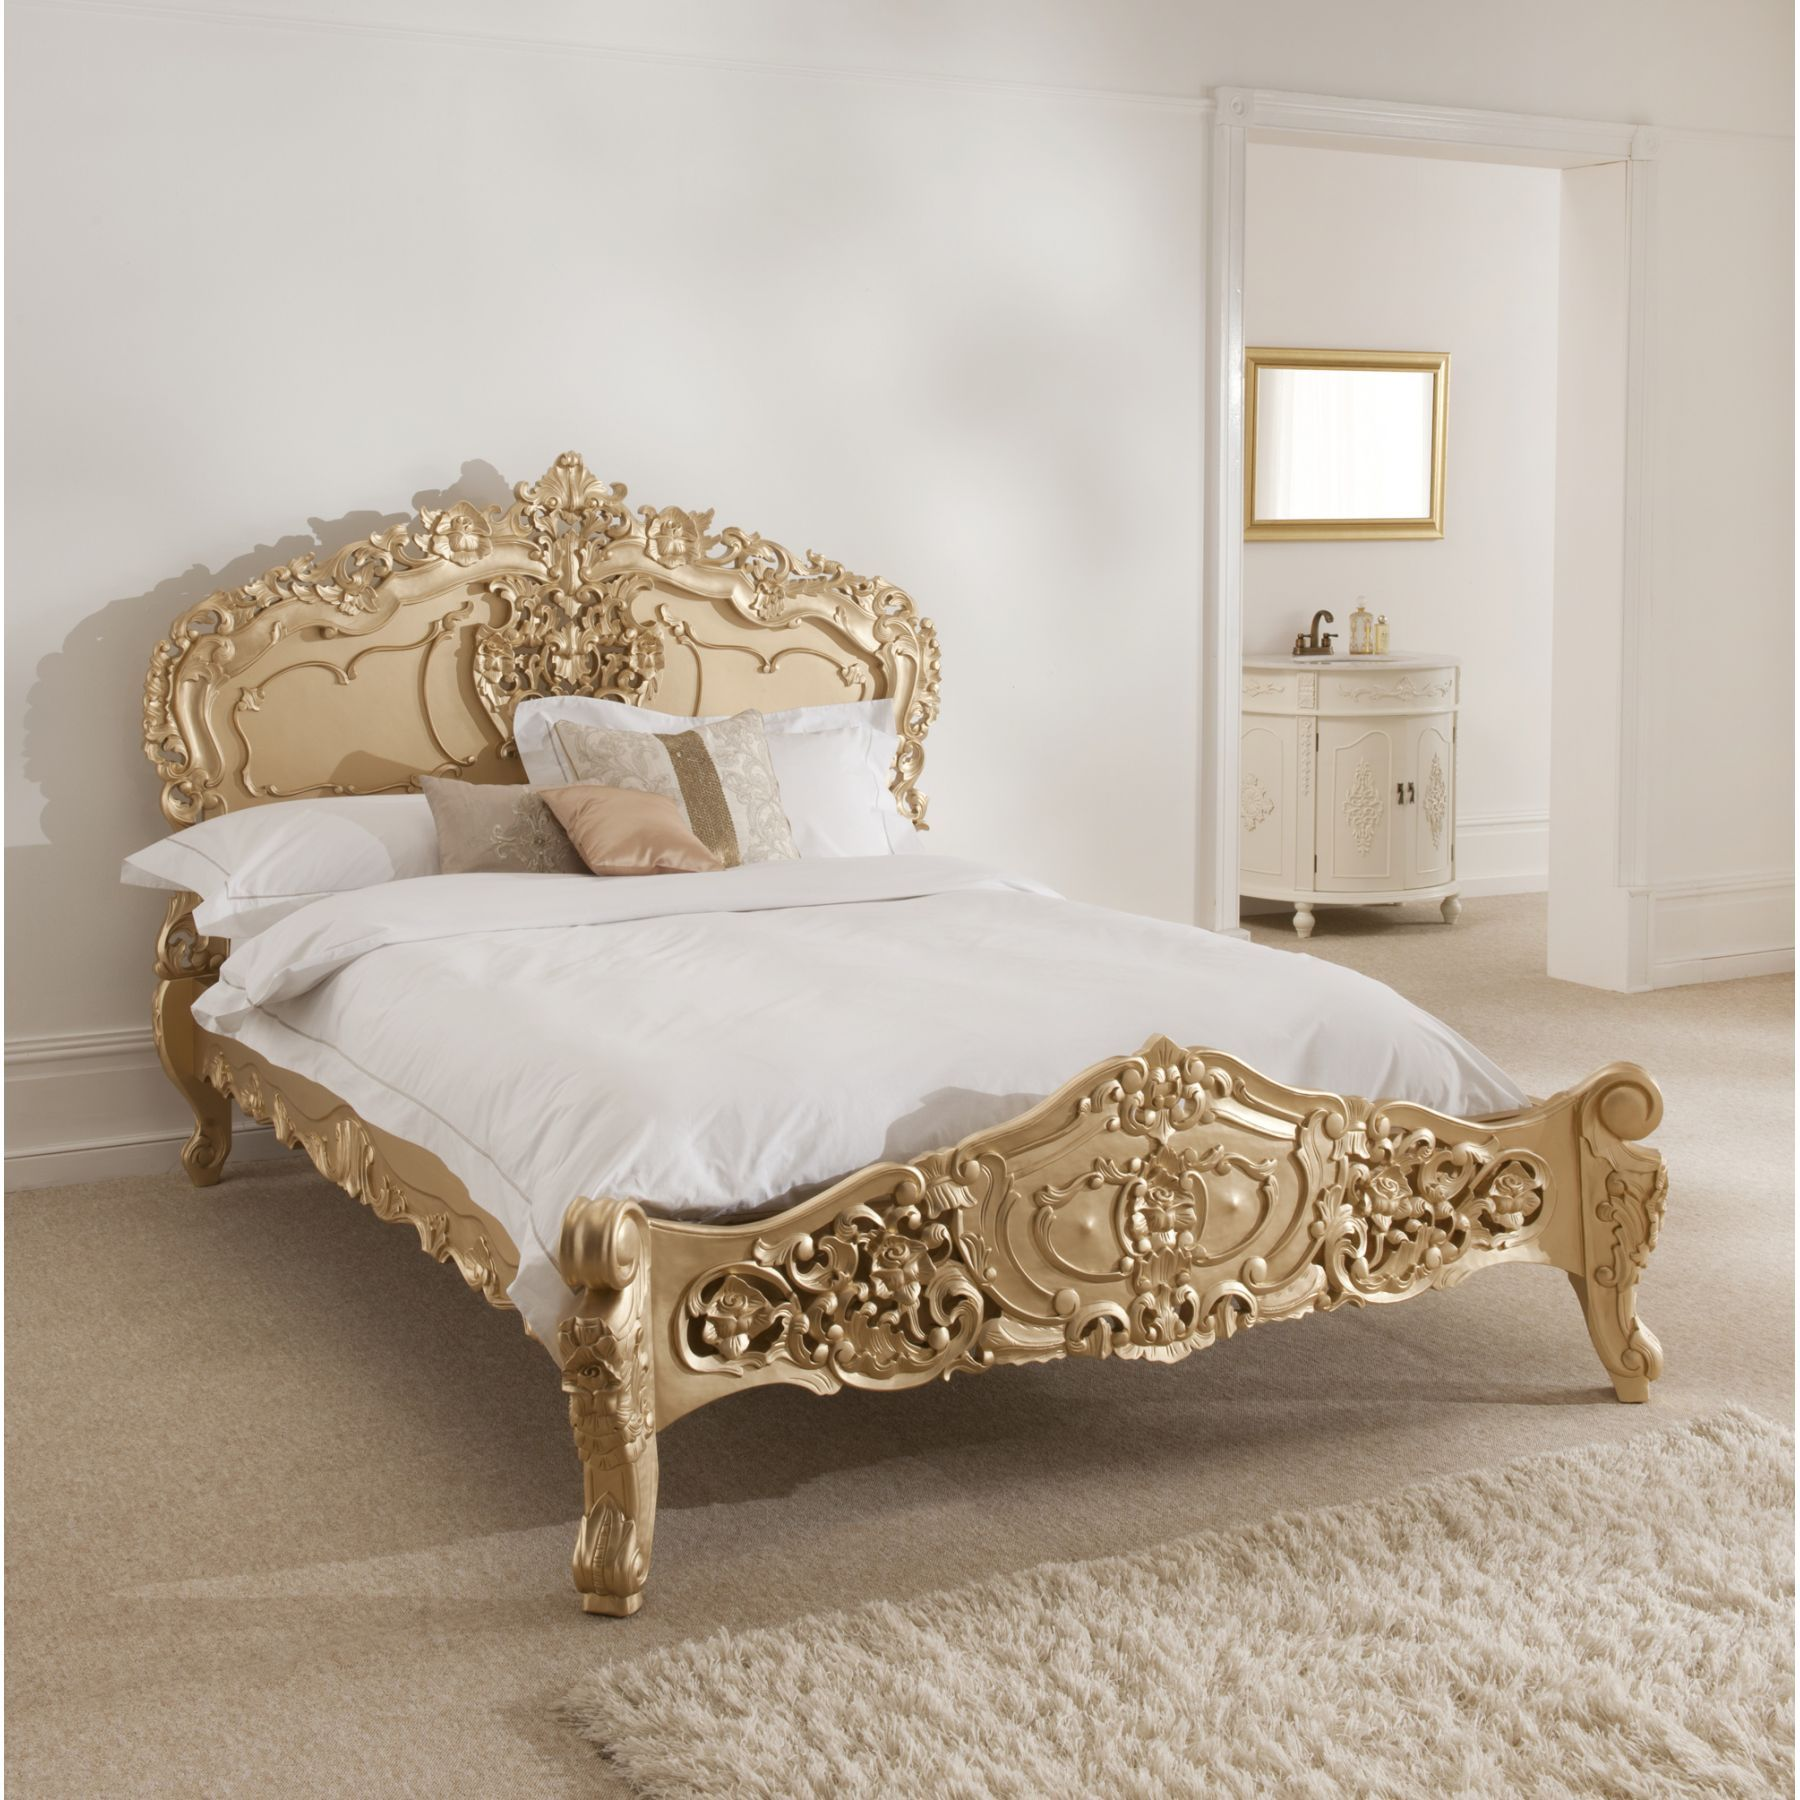 Antique furniture bedroom - Antique Bedroom Furniture